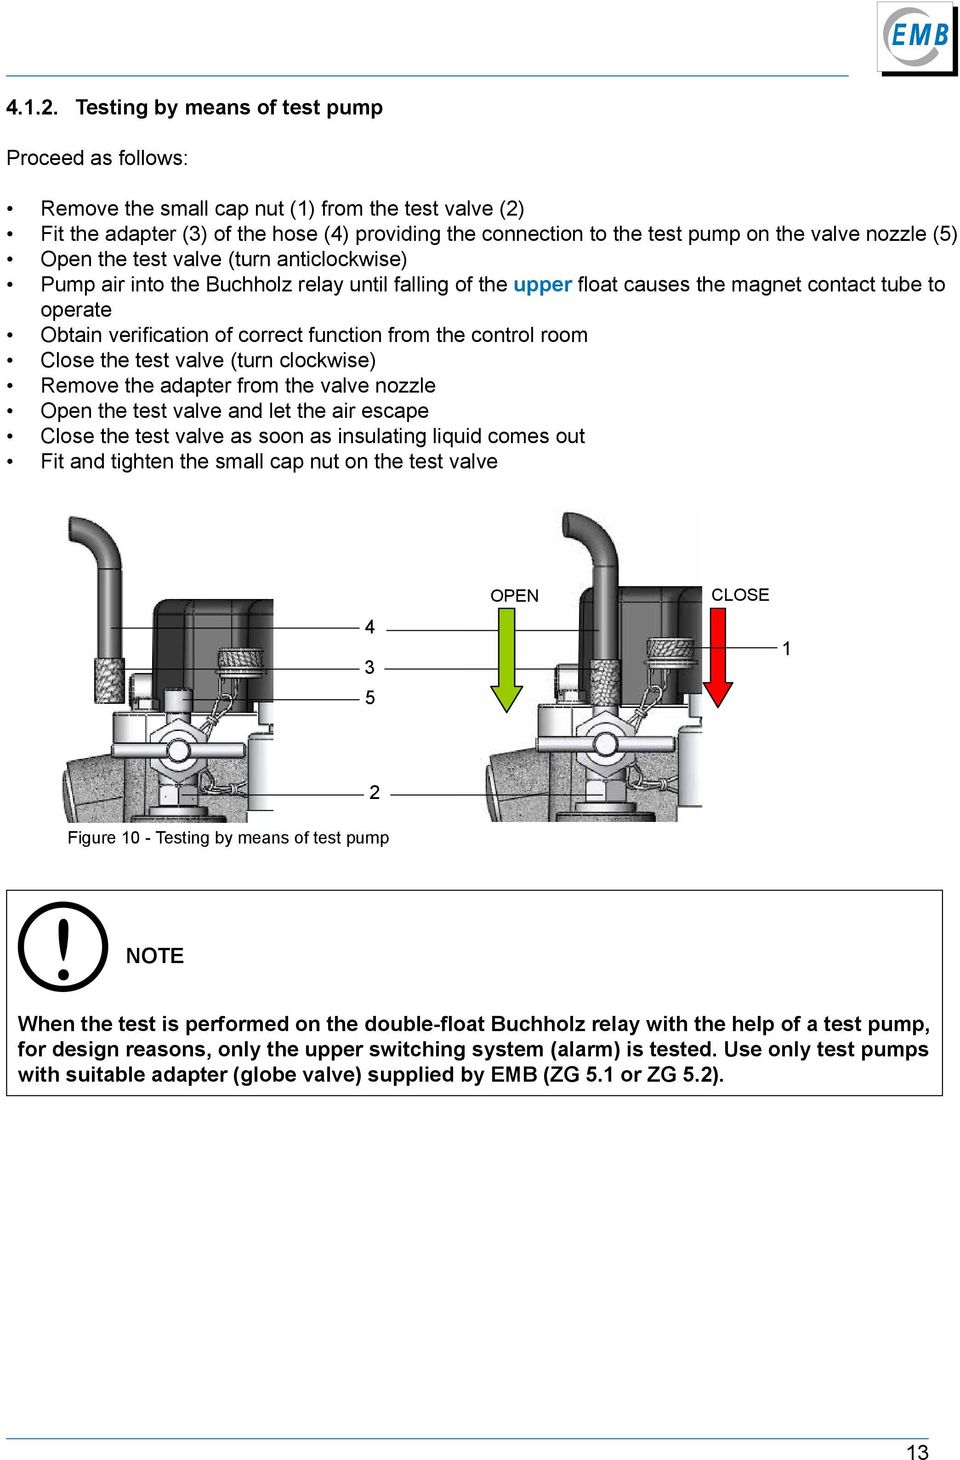 nozzle (5) Open the test valve (turn anticlockwise) Pump air into the Buchholz relay until falling of the upper float causes the magnet contact tube to operate Obtain verification of correct function